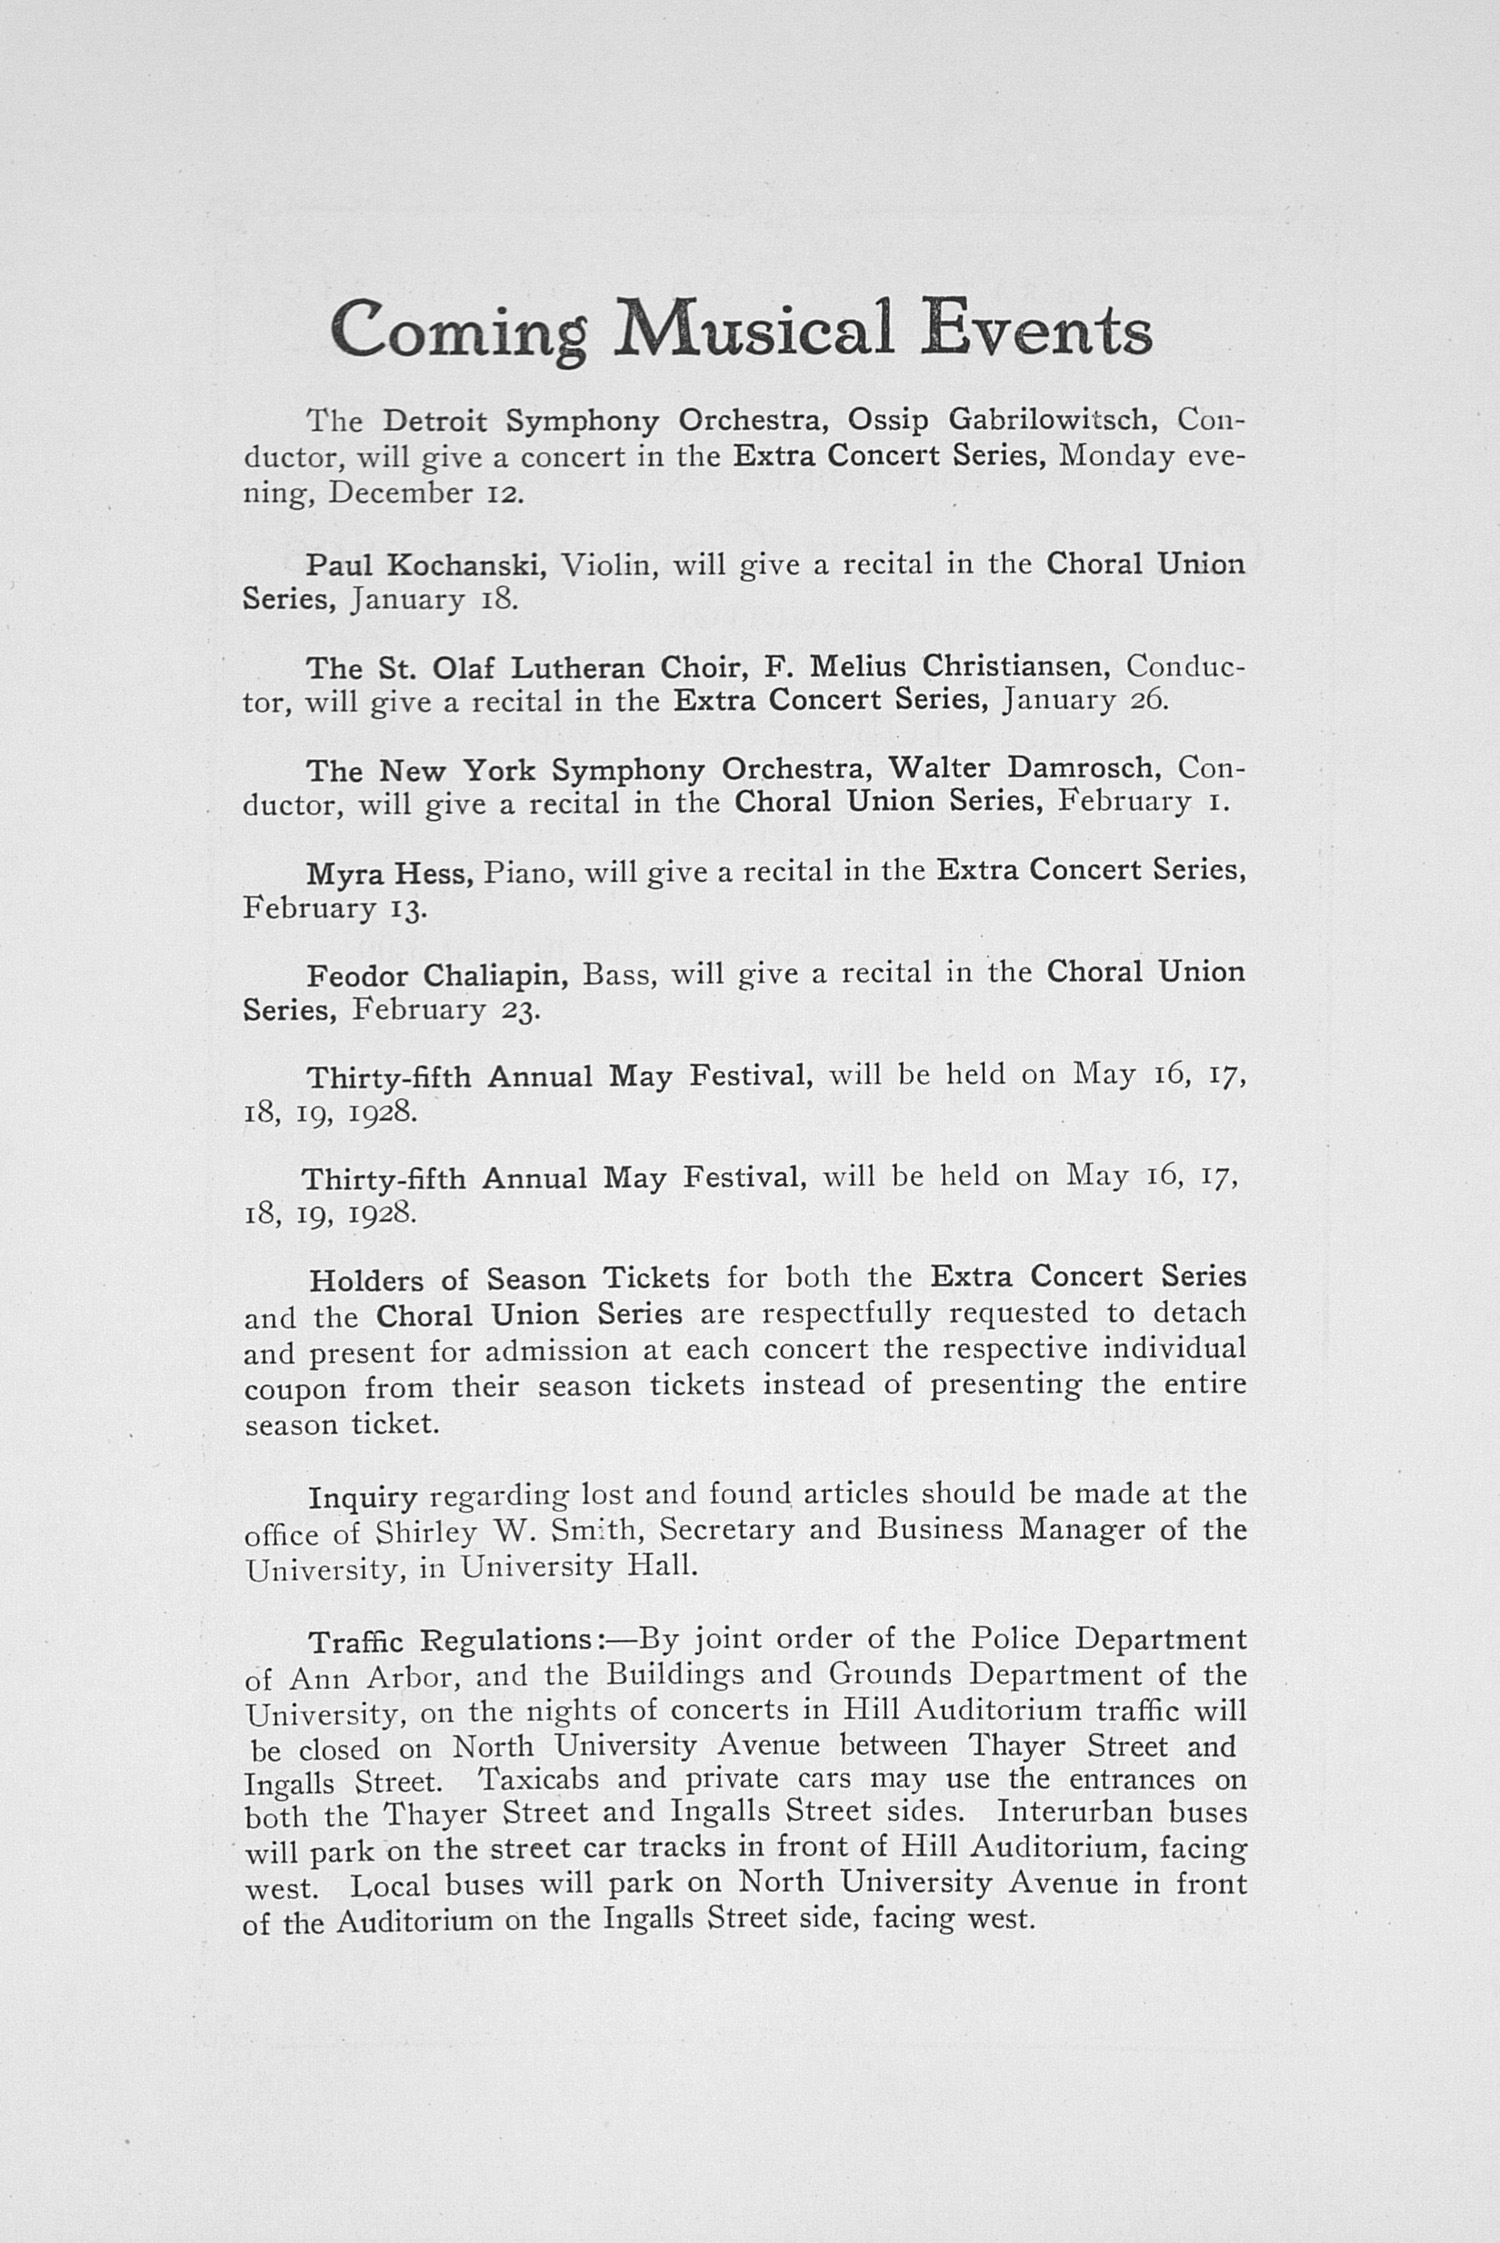 UMS Concert Program, November 23, 1927: Forty-ninth Annual Choral Union Concert Series -- Lea Luboshutz image